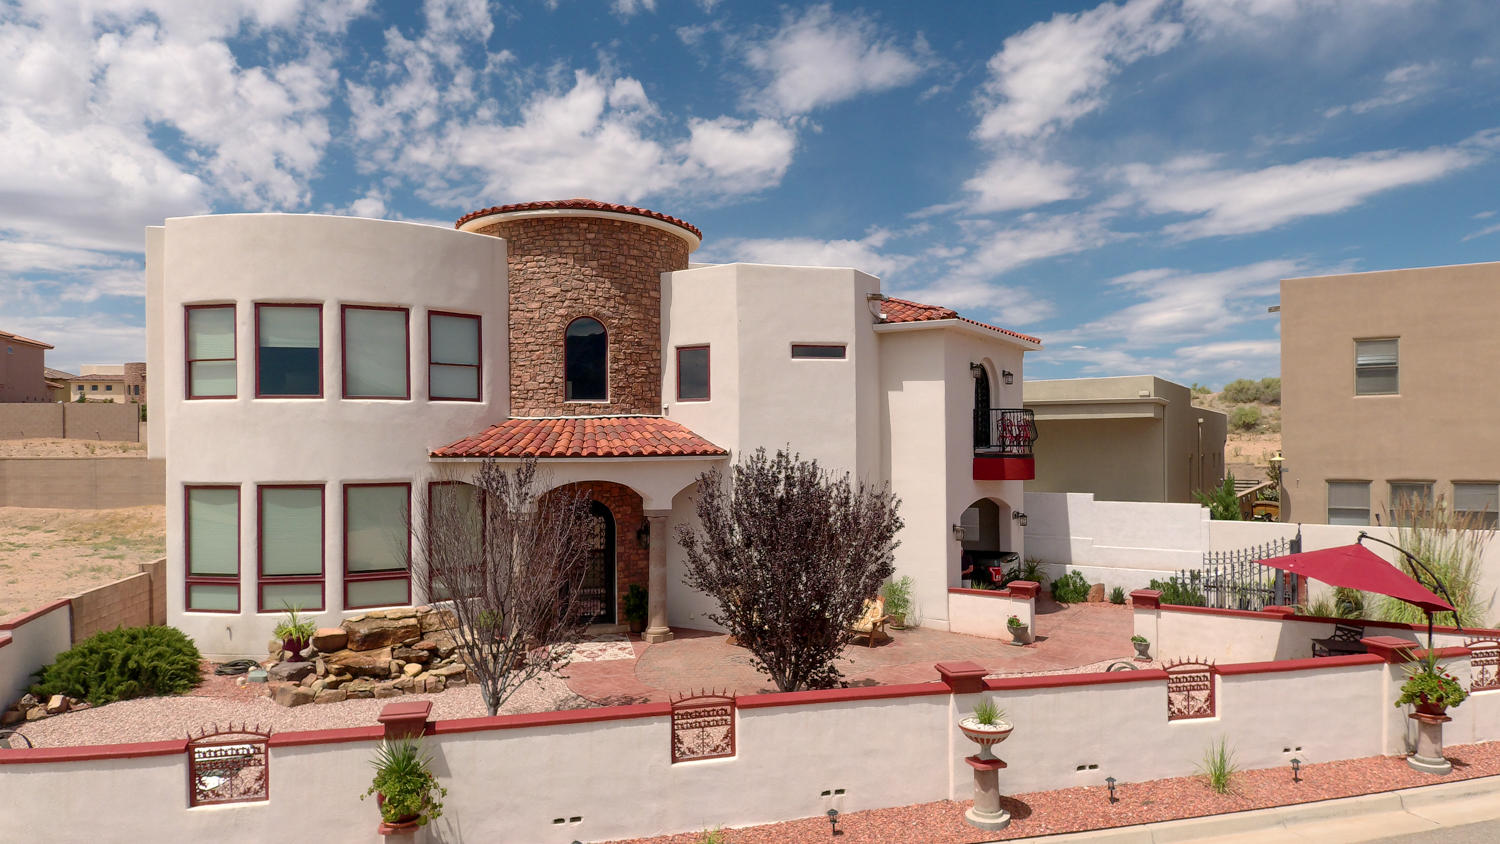 910 NICHOLAS Court Property Photo - Bernalillo, NM real estate listing